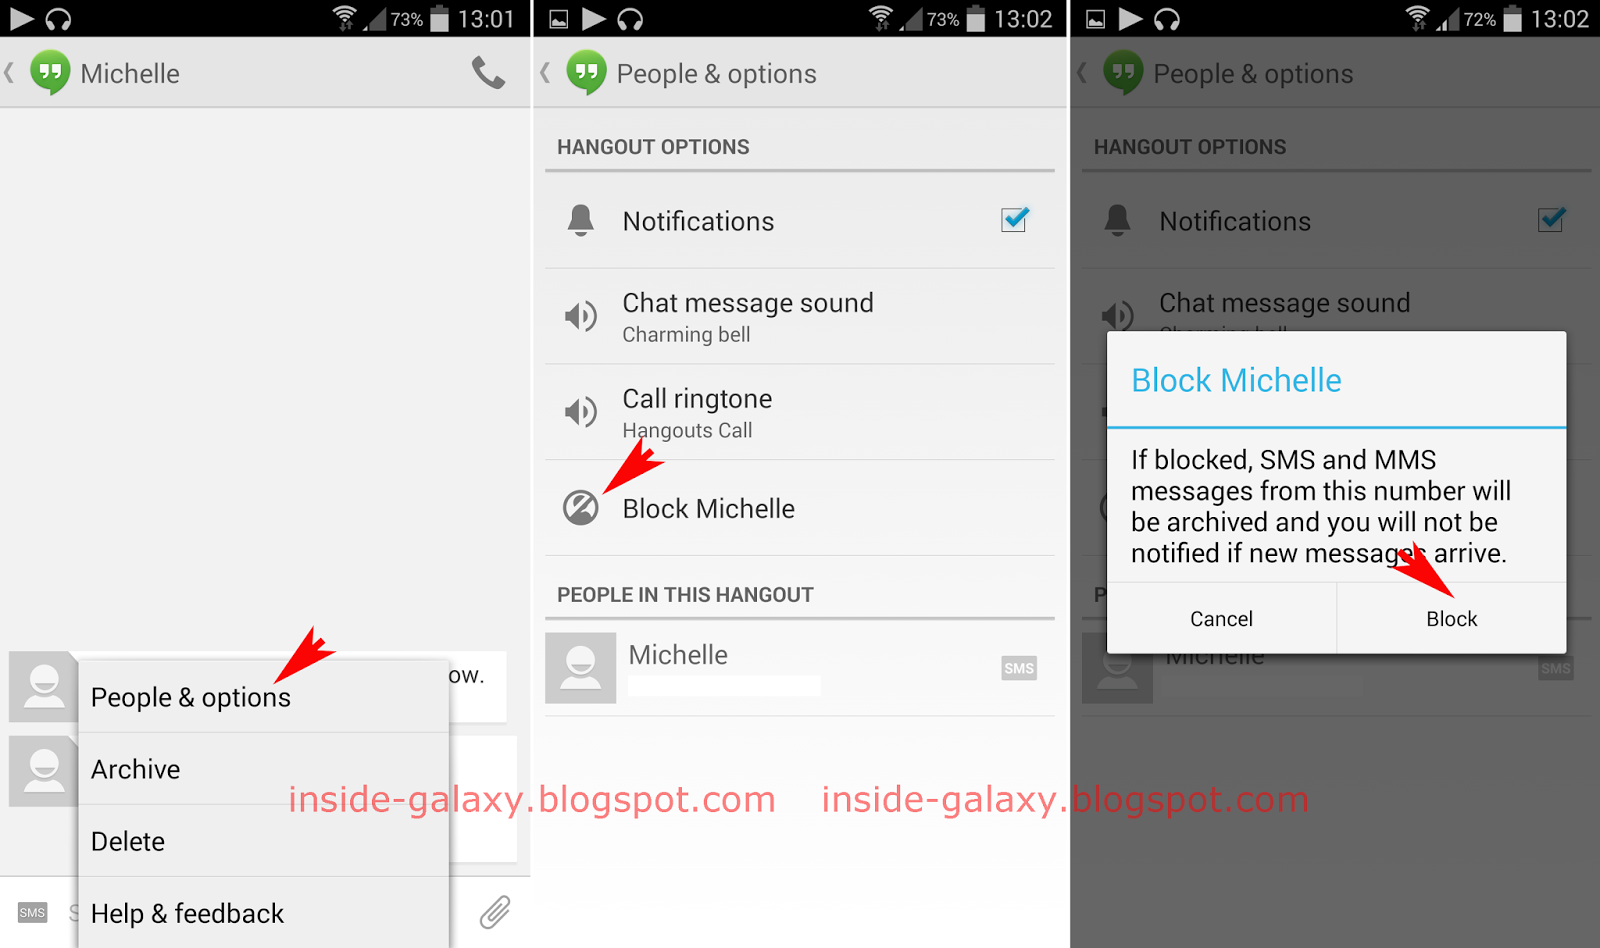 Samsung Galaxy S4: How to Block Unwanted Messages in